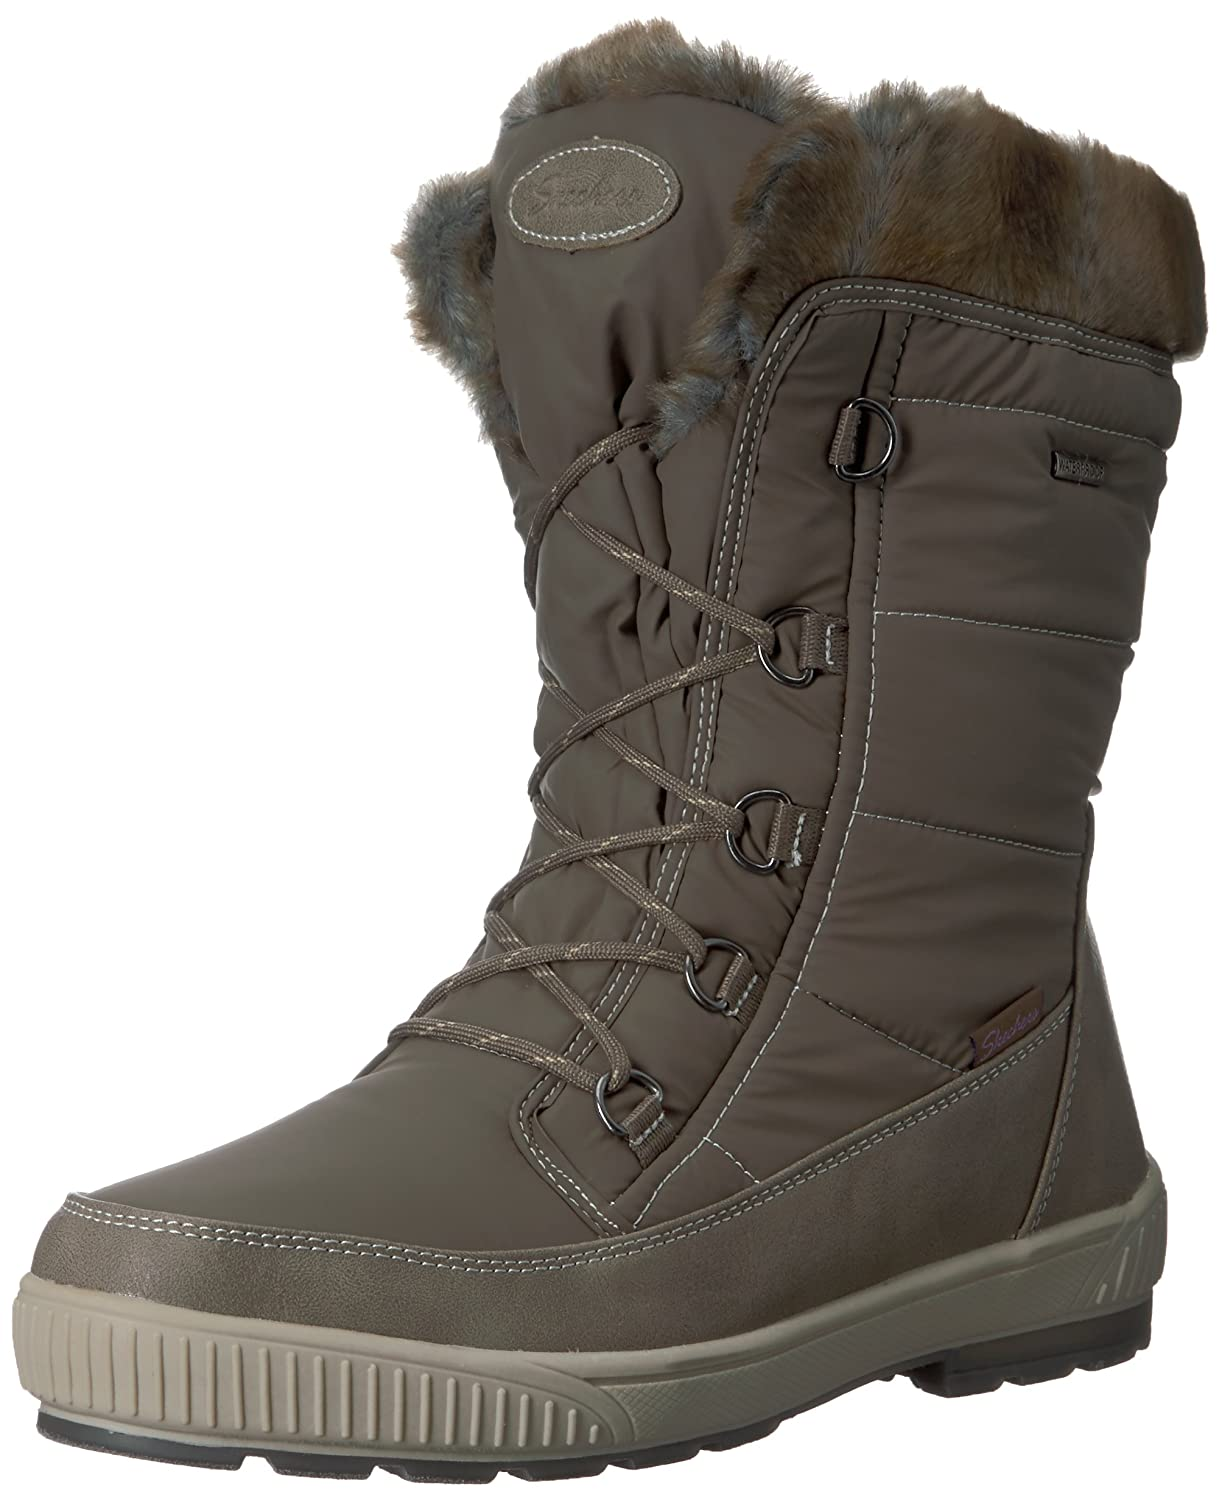 Skechers Women's Woodland-Mid Lace Snow Boot B06XL145GV 8 B(M) US|Dark Taupe